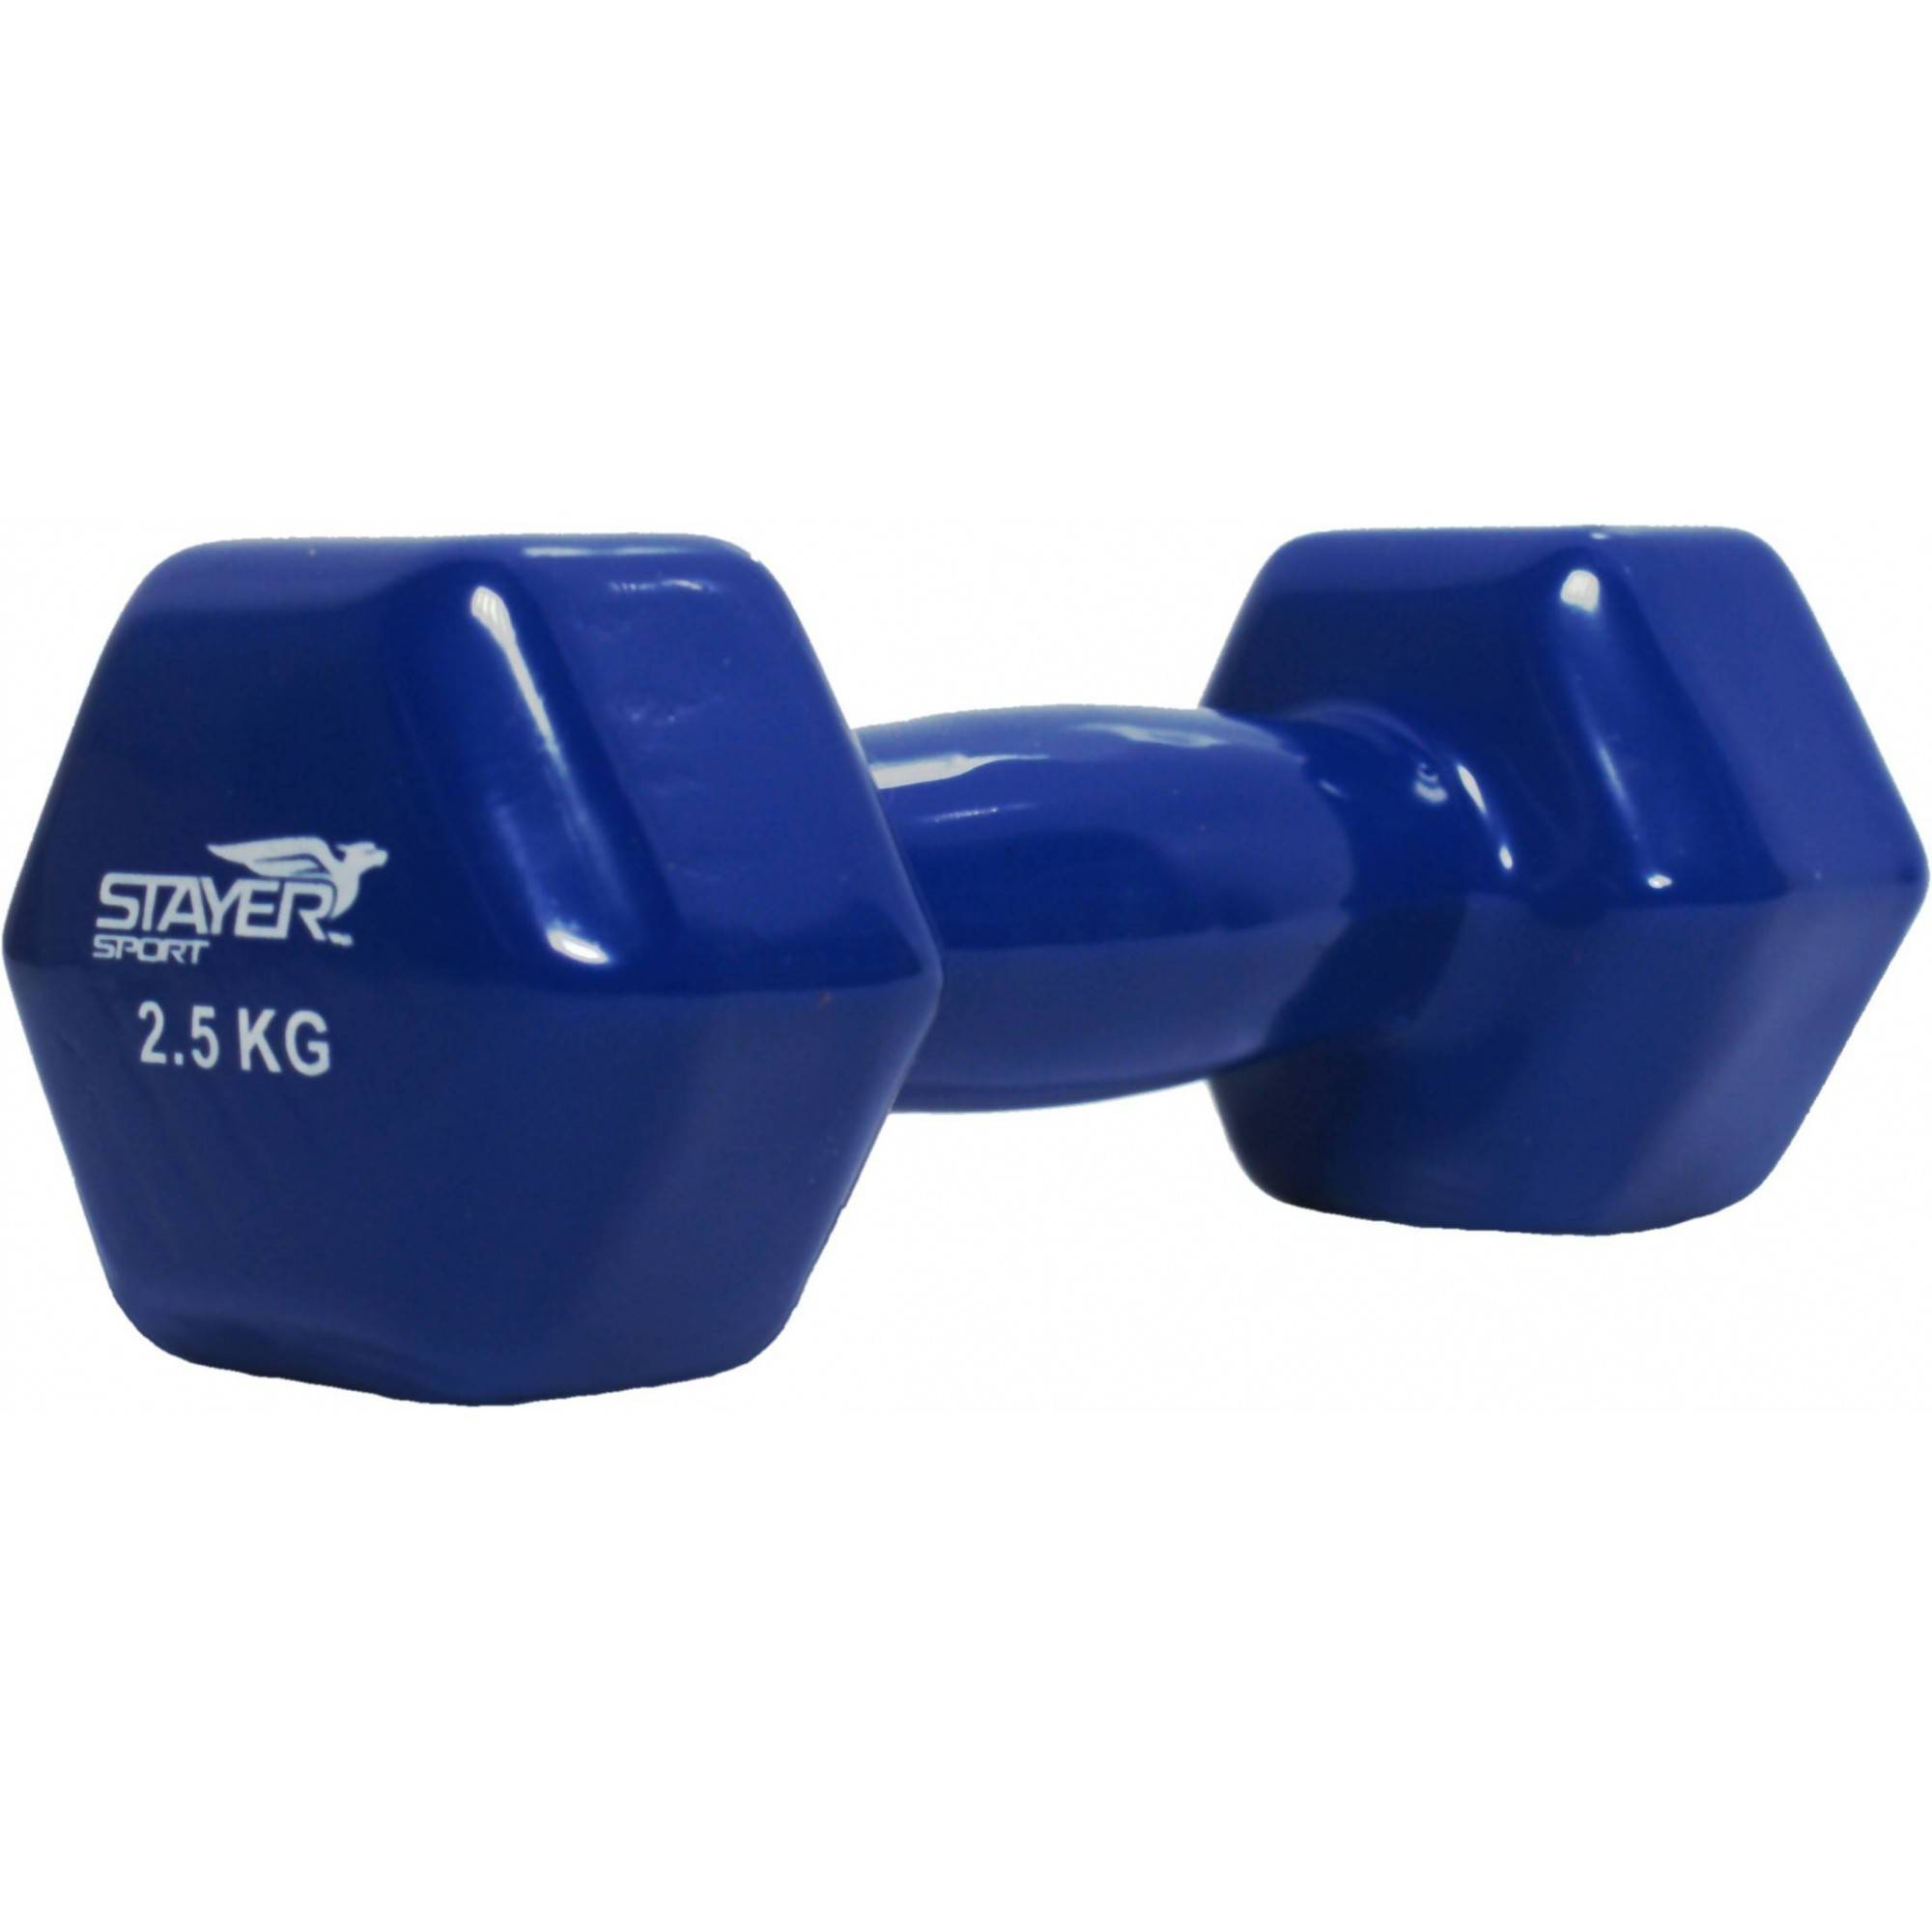 Hantla fitness winylowa Stayer Sport Hex | 2,5kg,producent: Stayer Sport, zdjecie photo: 1 | online shop klubfitness.pl | sprzęt